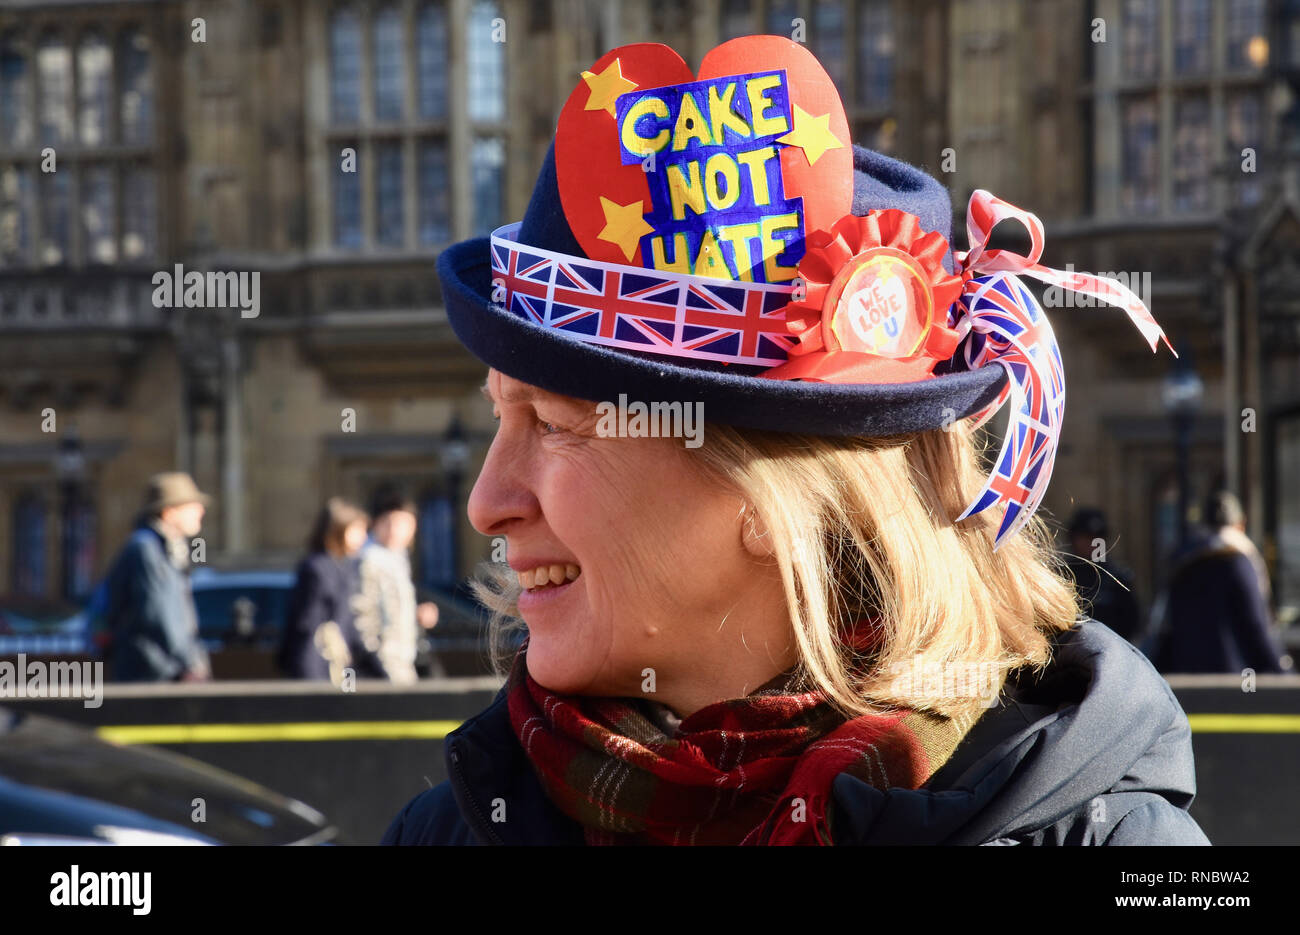 Valentine's Day Protest.Cake Not Hate,Anti Brexit Pro EU Demonstration,Houses of Parliament,Westminster,London.UK - Stock Image